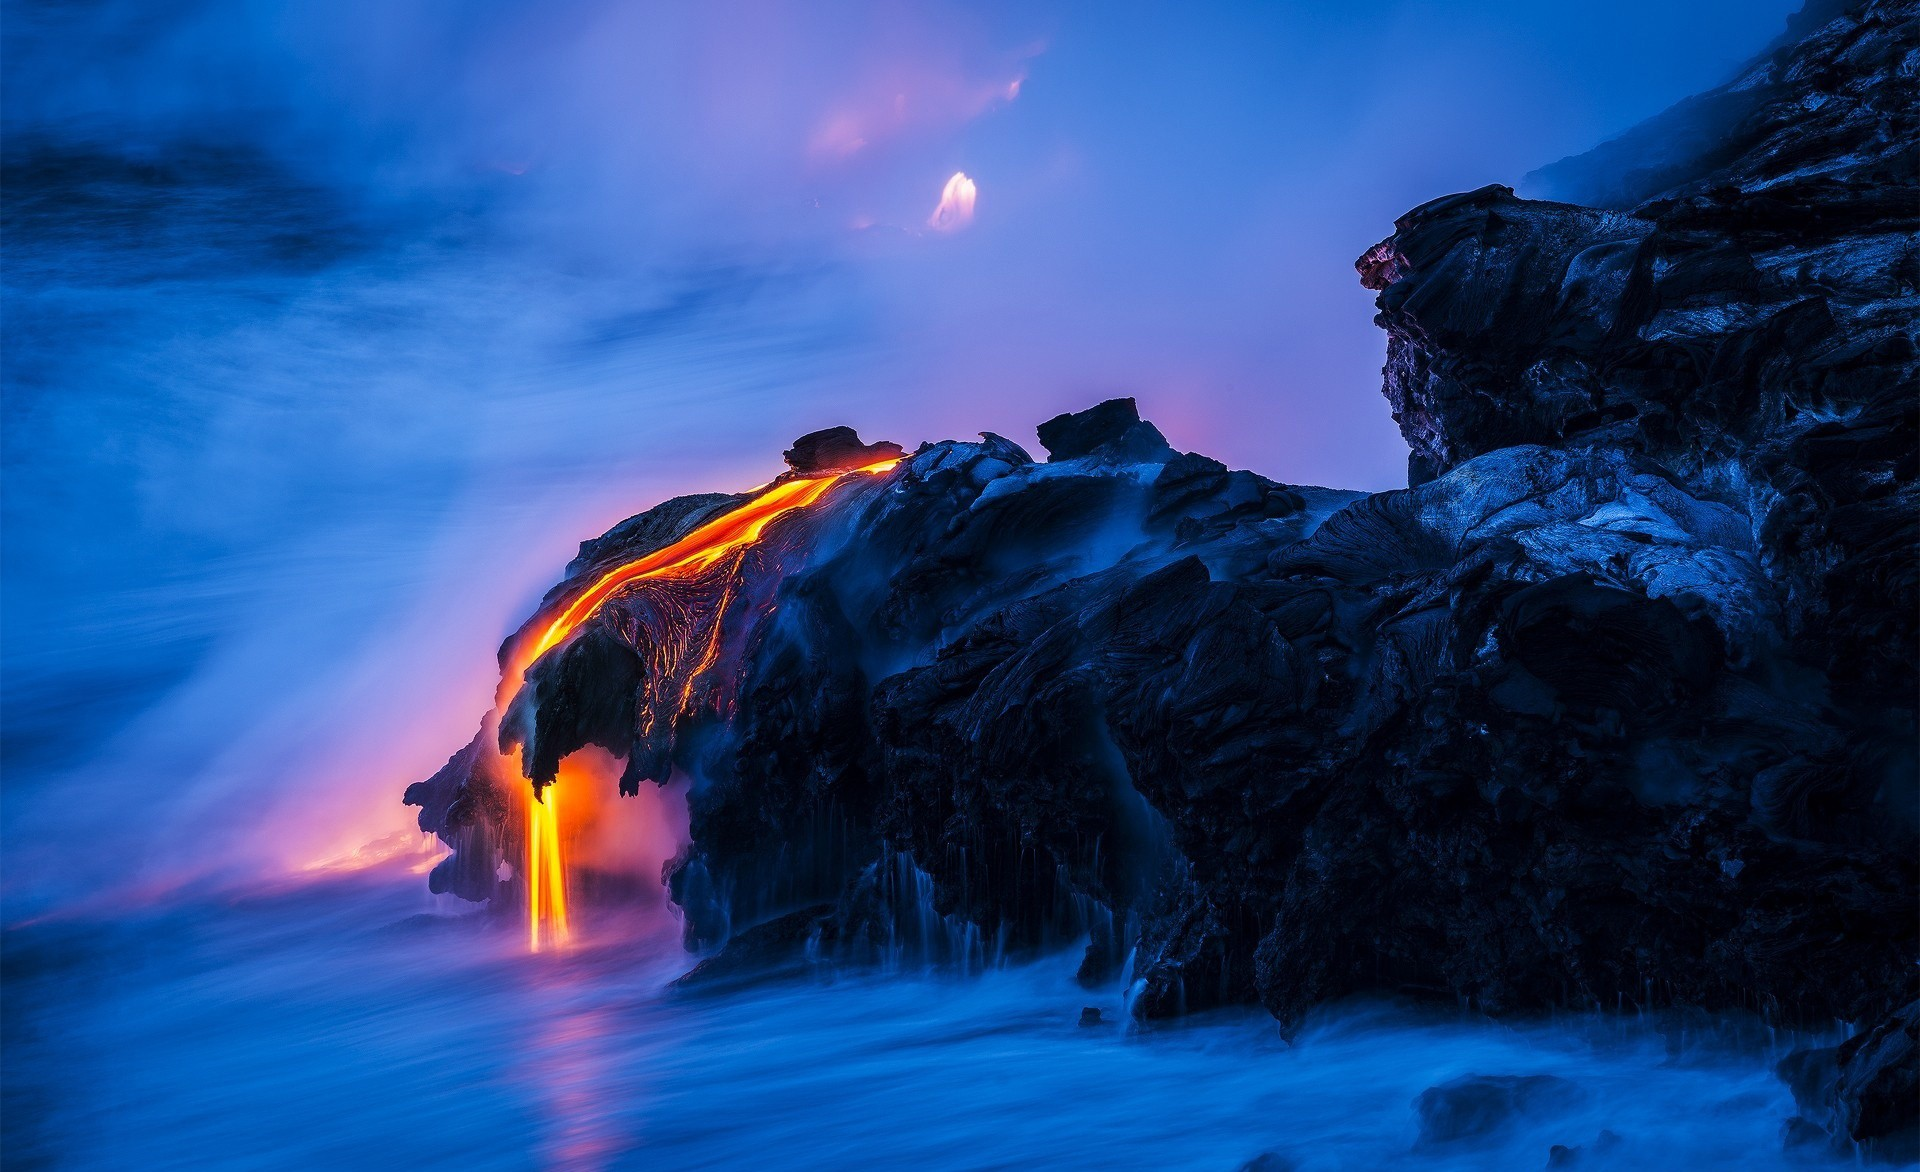 Cool Pc Wallpapers 4k Posted By Christopher Walker